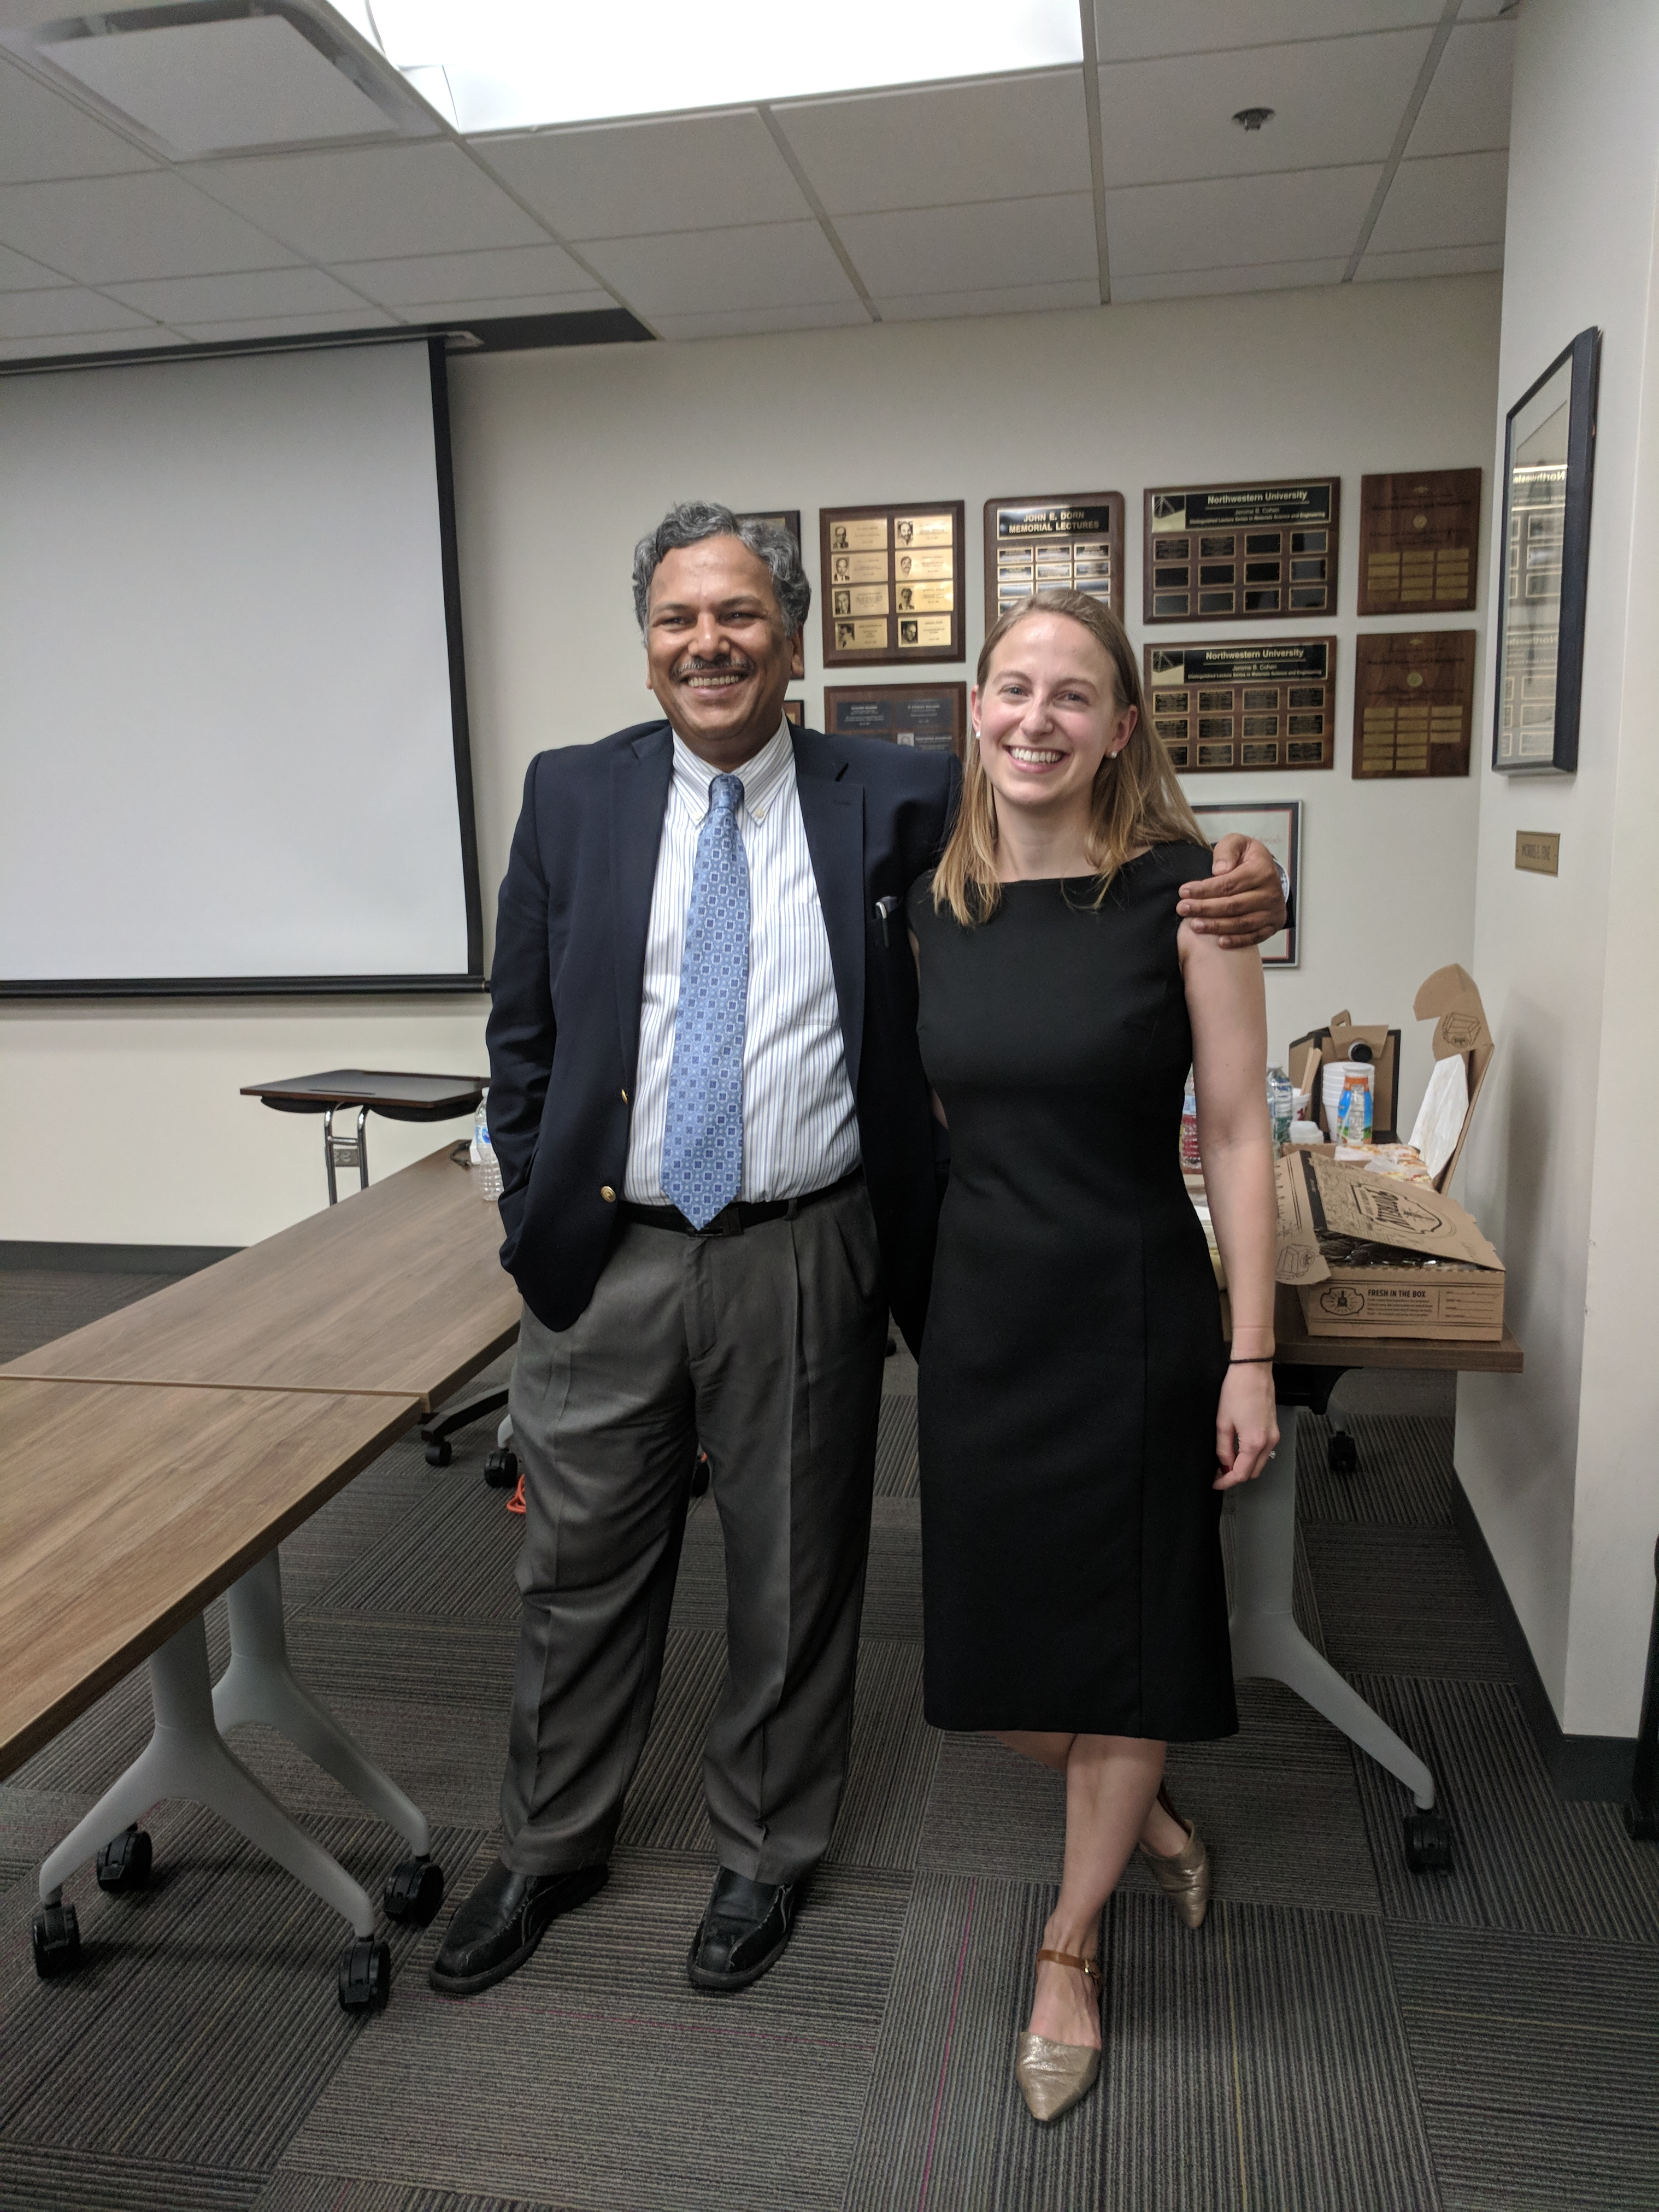 Professor Dravid with the newly titled Dr. Hanson